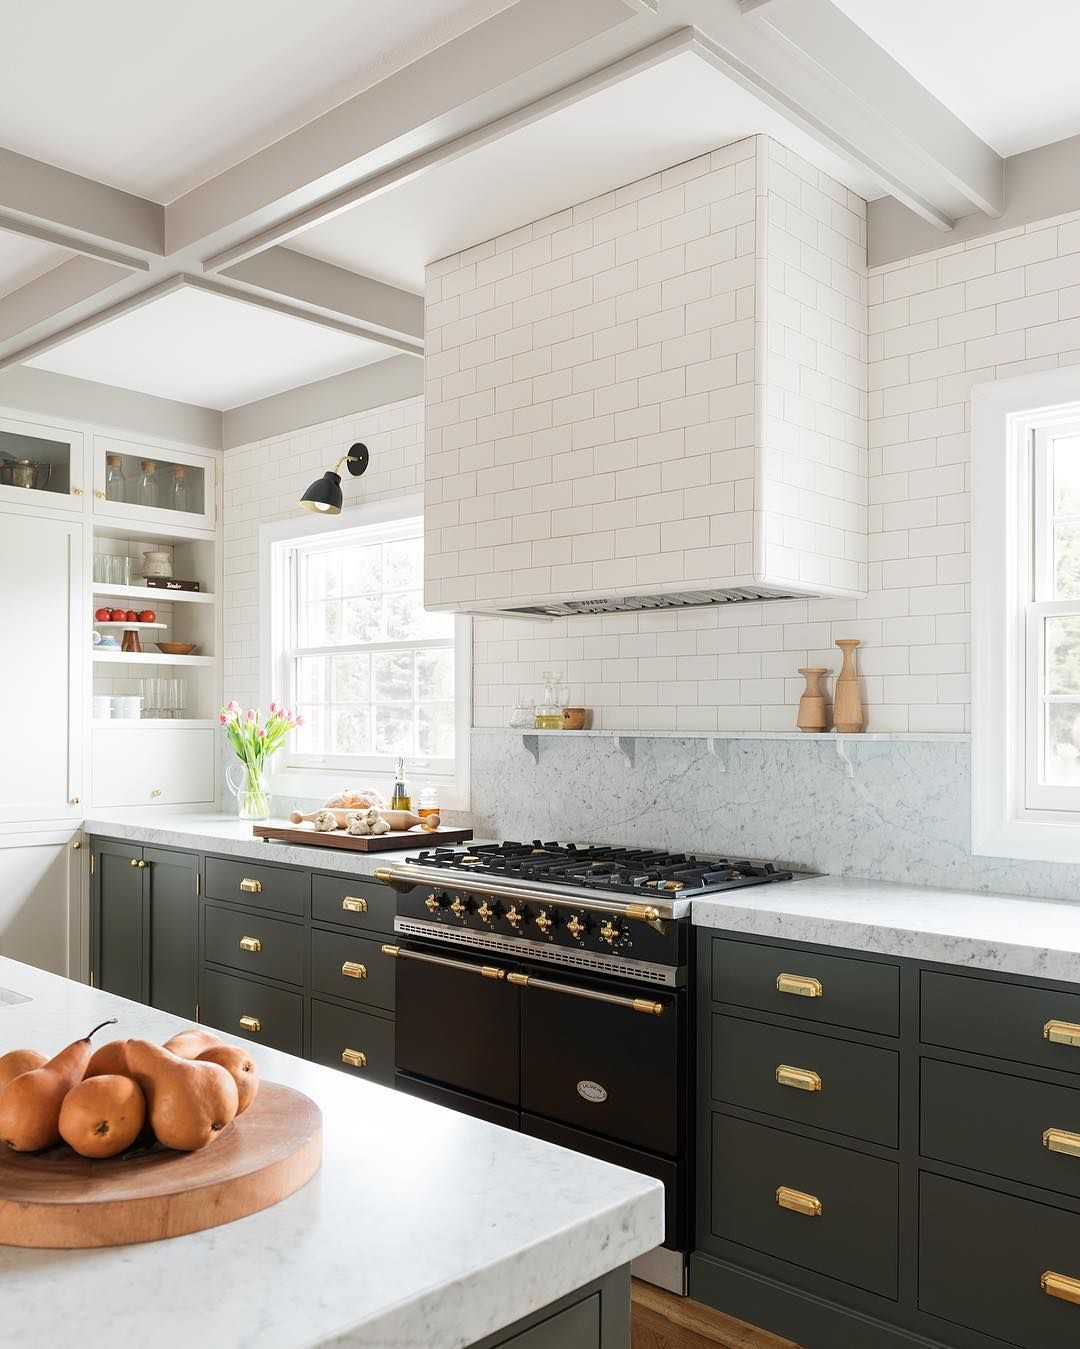 Pinheather Barmstrong On Kitchens  Pinterest  Kitchens Amusing Design My Kitchen Layout Review